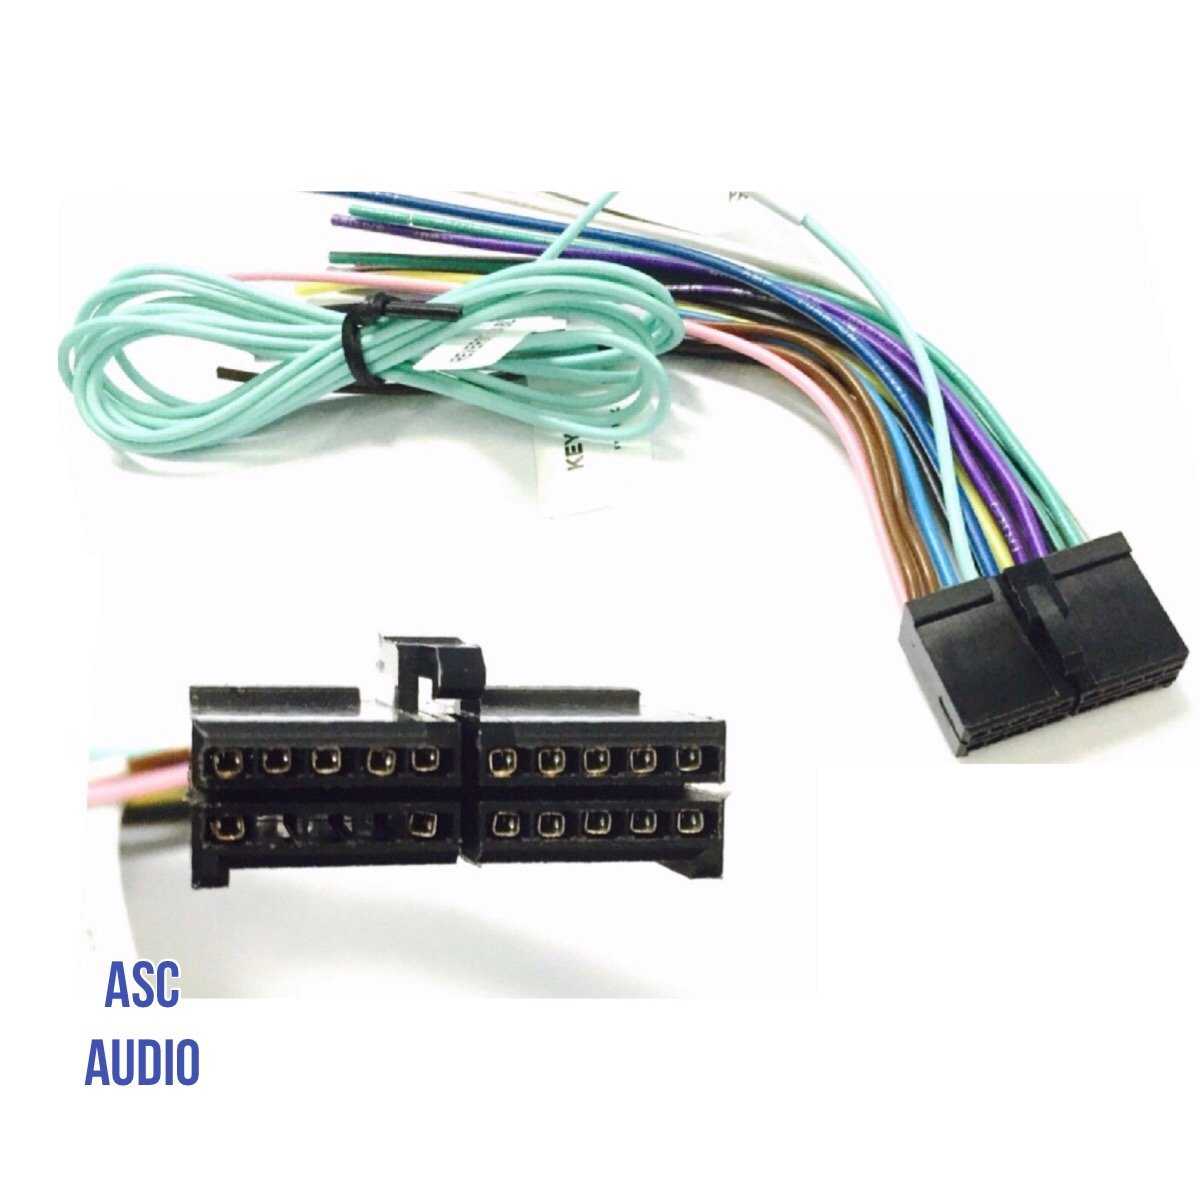 61MO4b59GtL._SL1200_ amazon com xtenzi wire harness for boss radio dvd navigatio boss wiring harness at alyssarenee.co